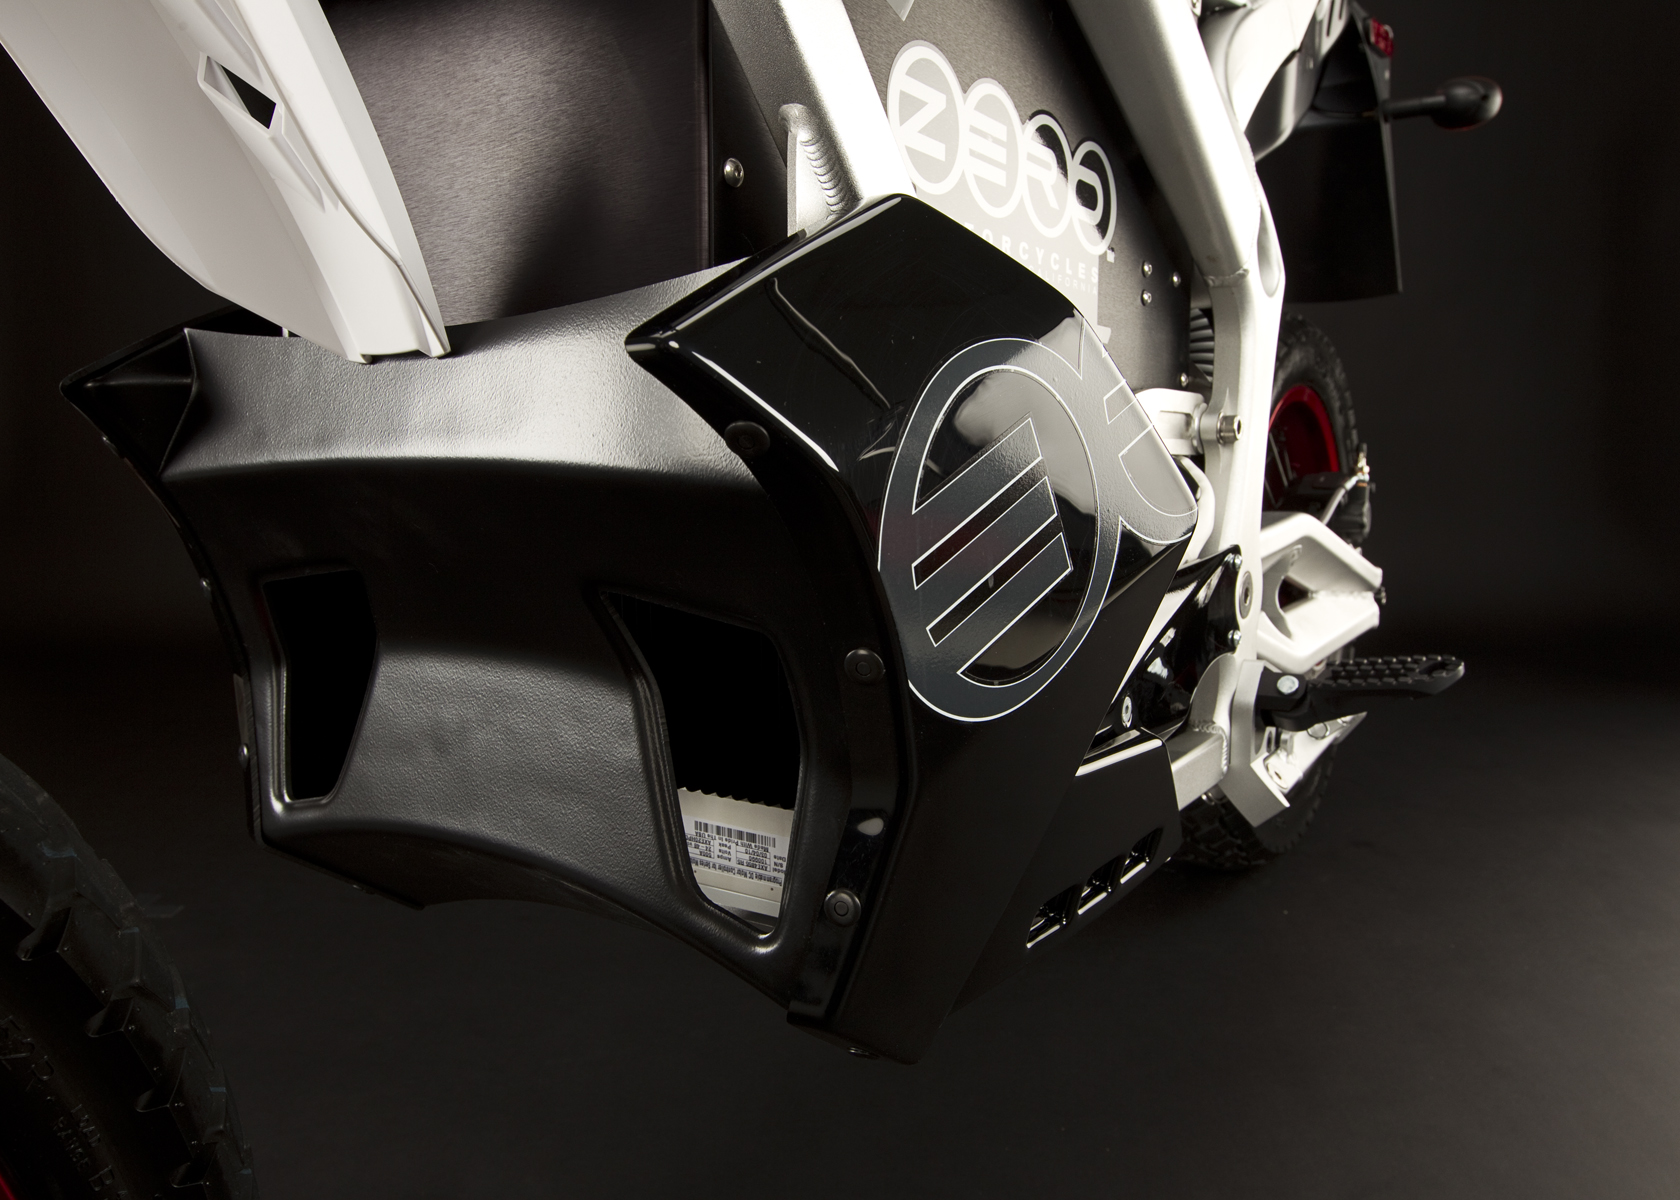 2011 Zero DS Electric Motorcycle: Carbon Fiber Vents